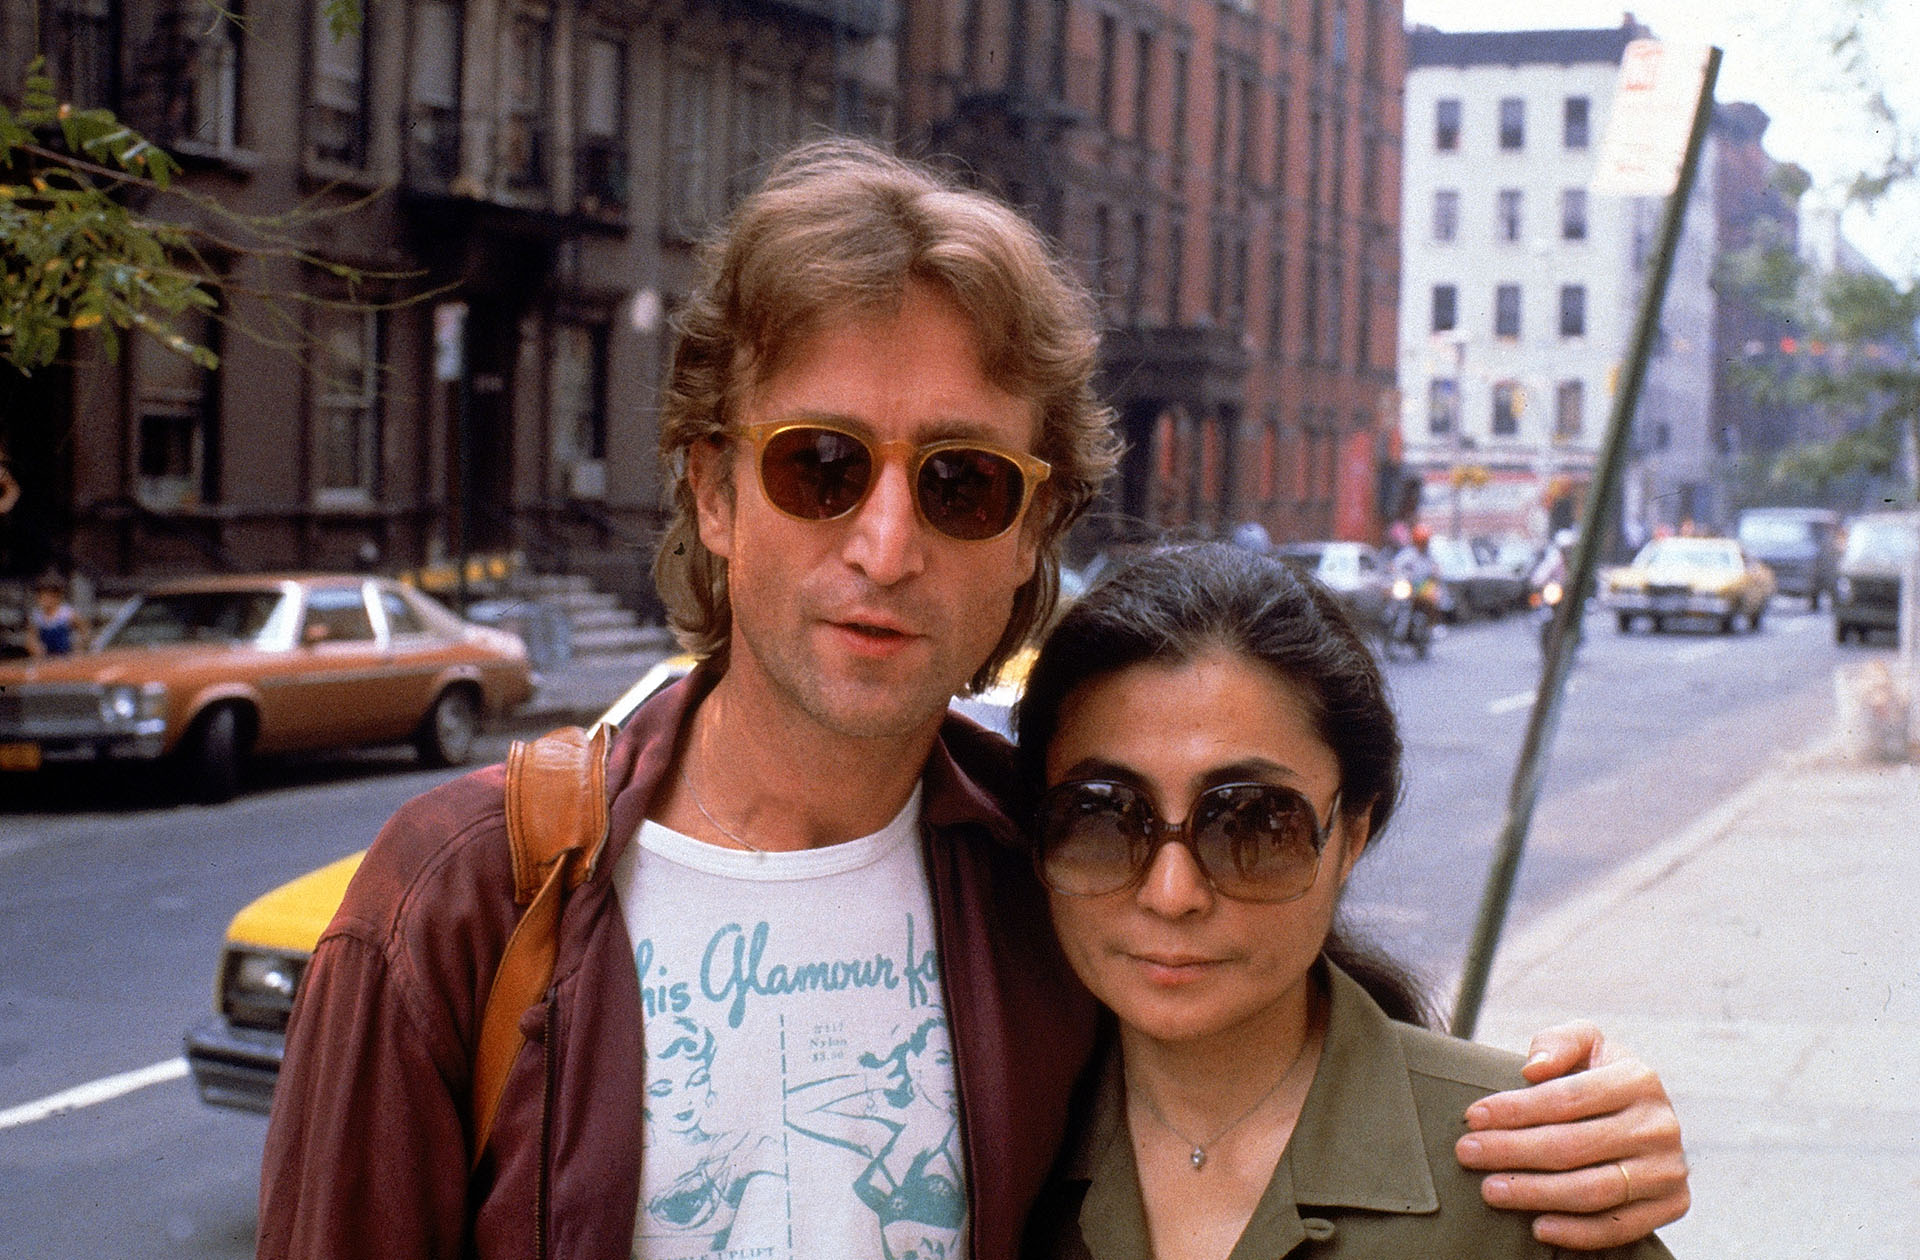 John Lennon y Yoko Ono. (Photo by David Mcgough/DMI/The LIFE Picture Collection/Getty Images)